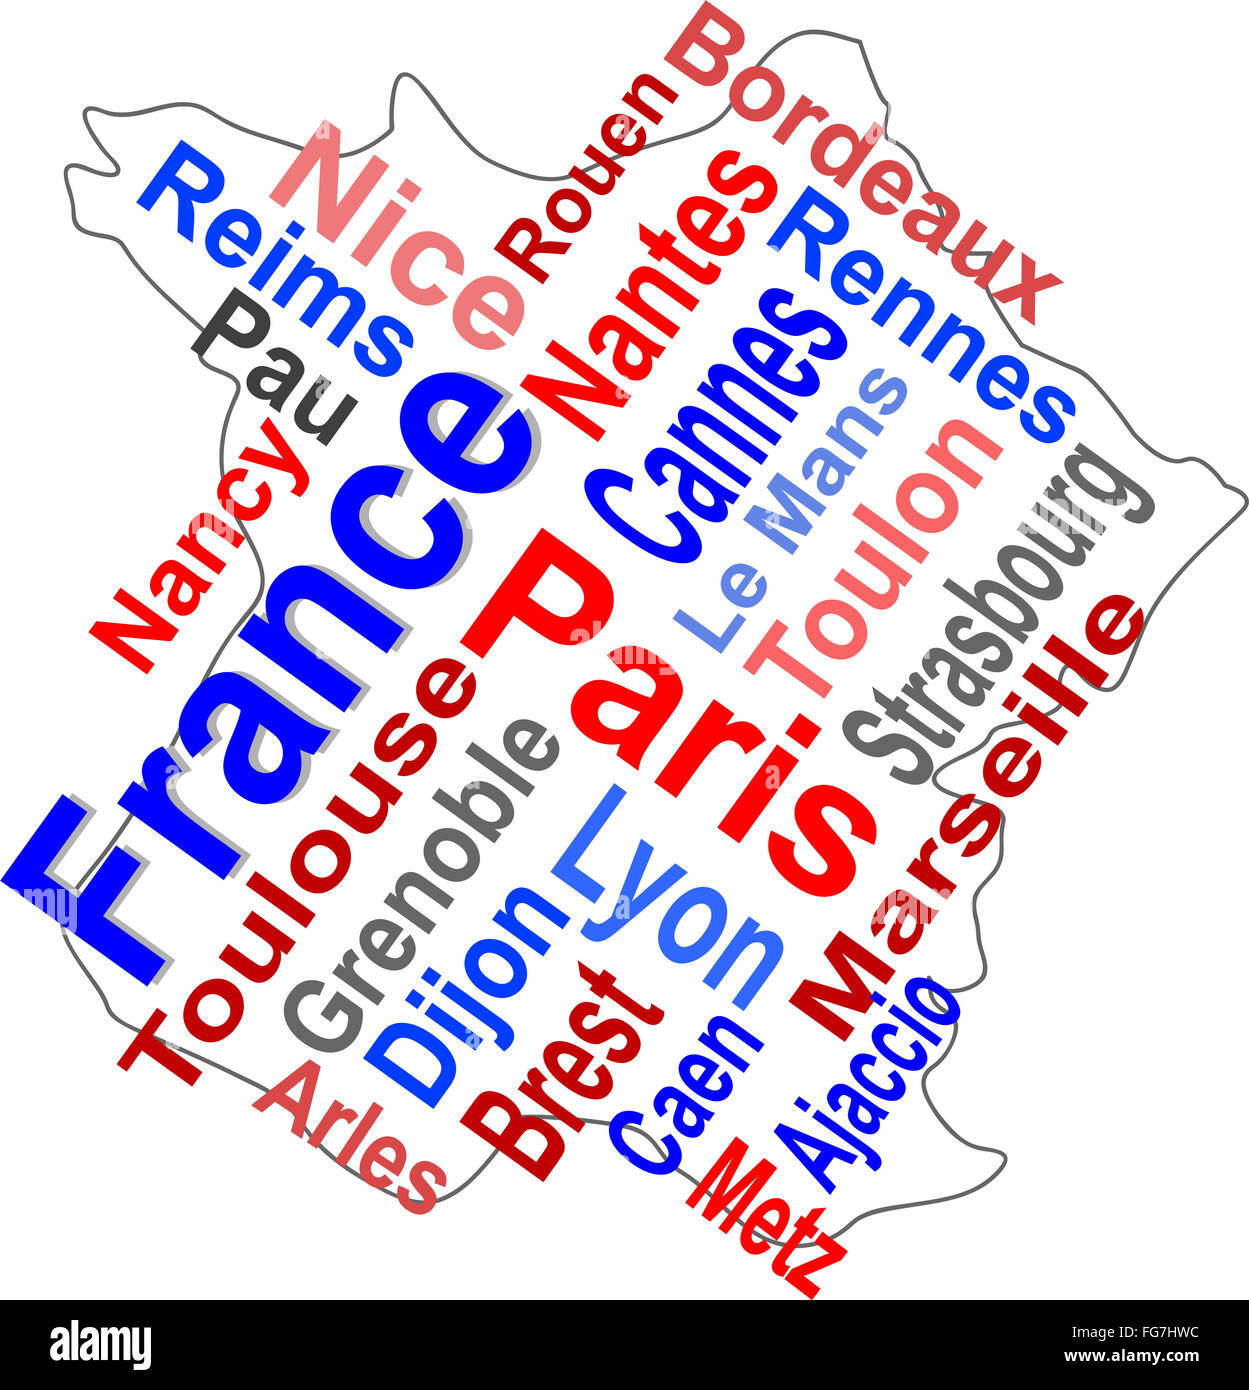 Cities Of France Map.France Map And Words Cloud With Larger Cities Stock Photo 96054040